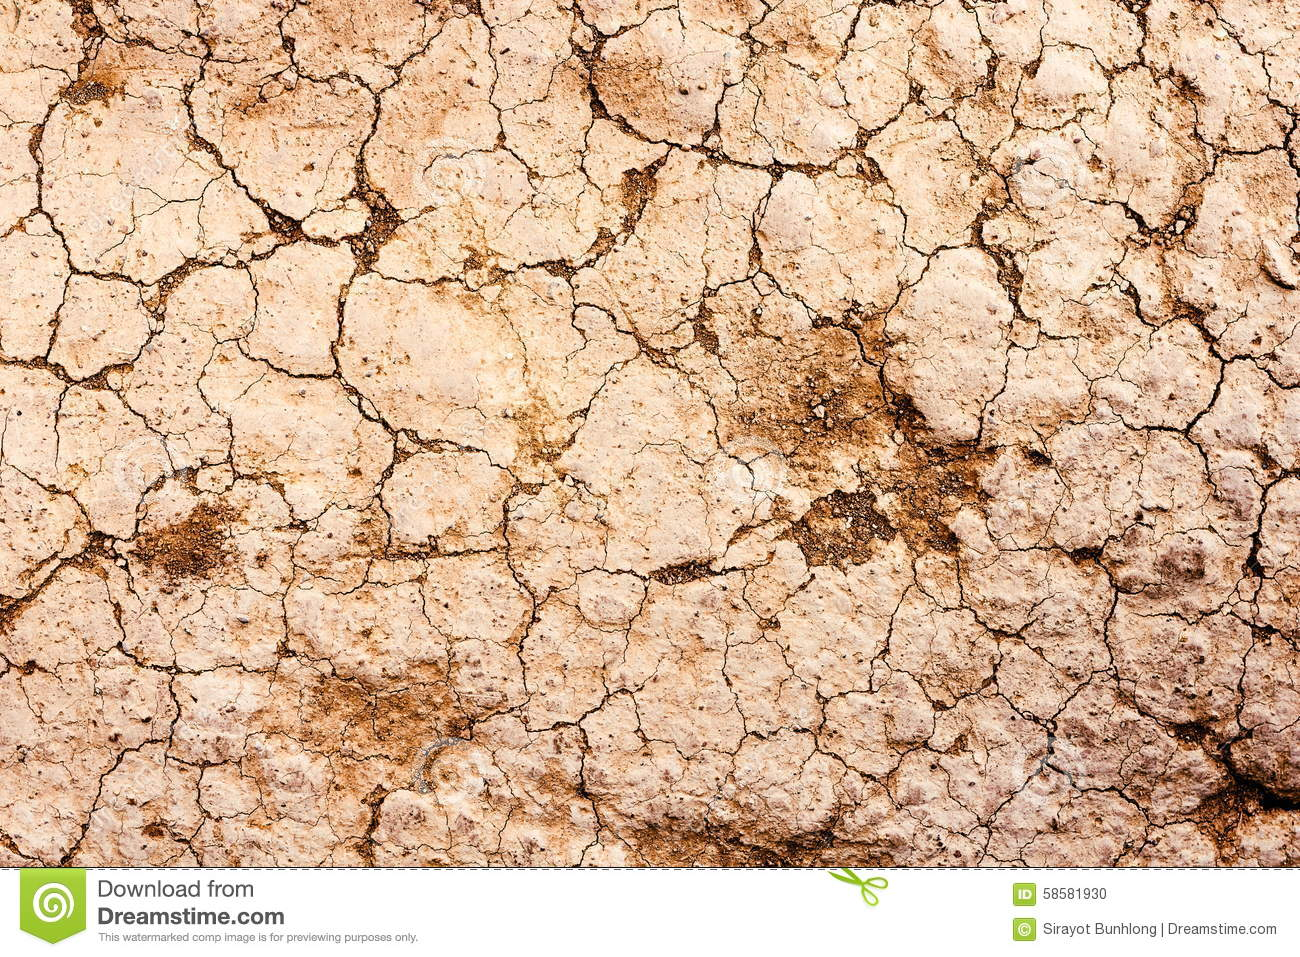 Dry cracked earth texture.